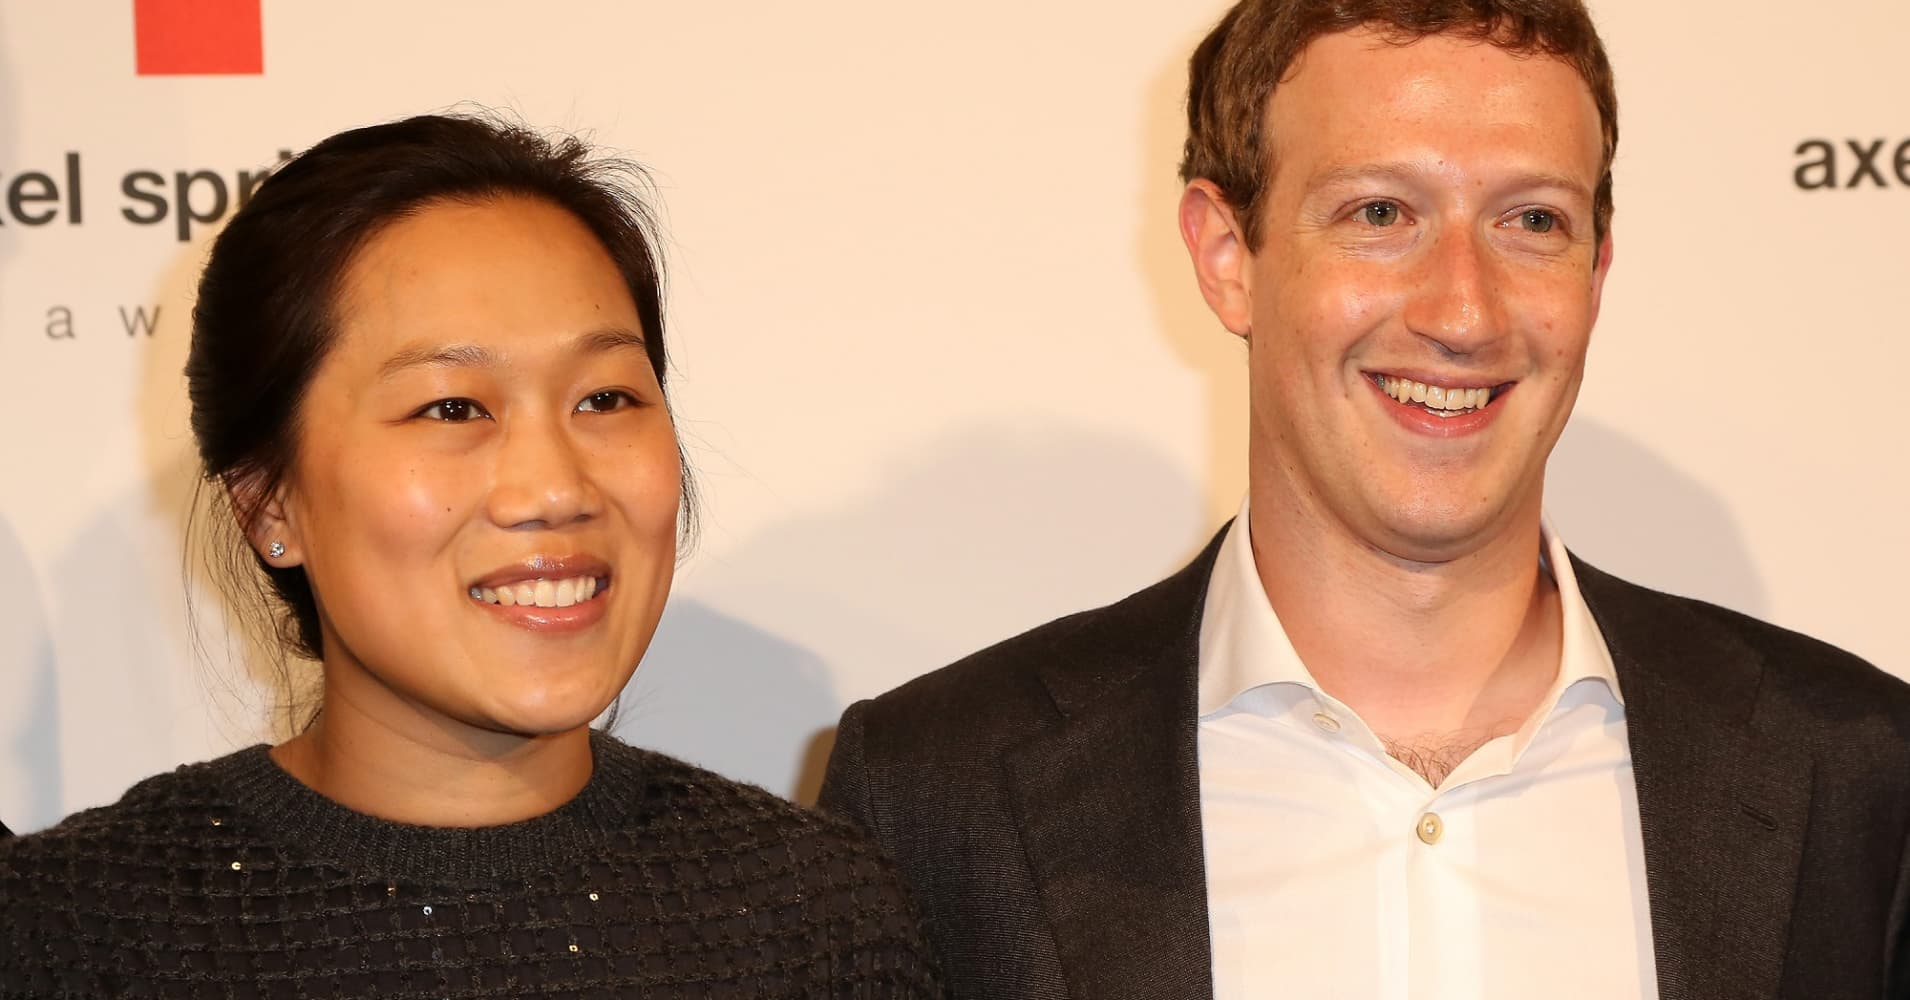 Mark Zuckerberg and Priscilla Chan: U.S. schools need technology, one-on-one instruction